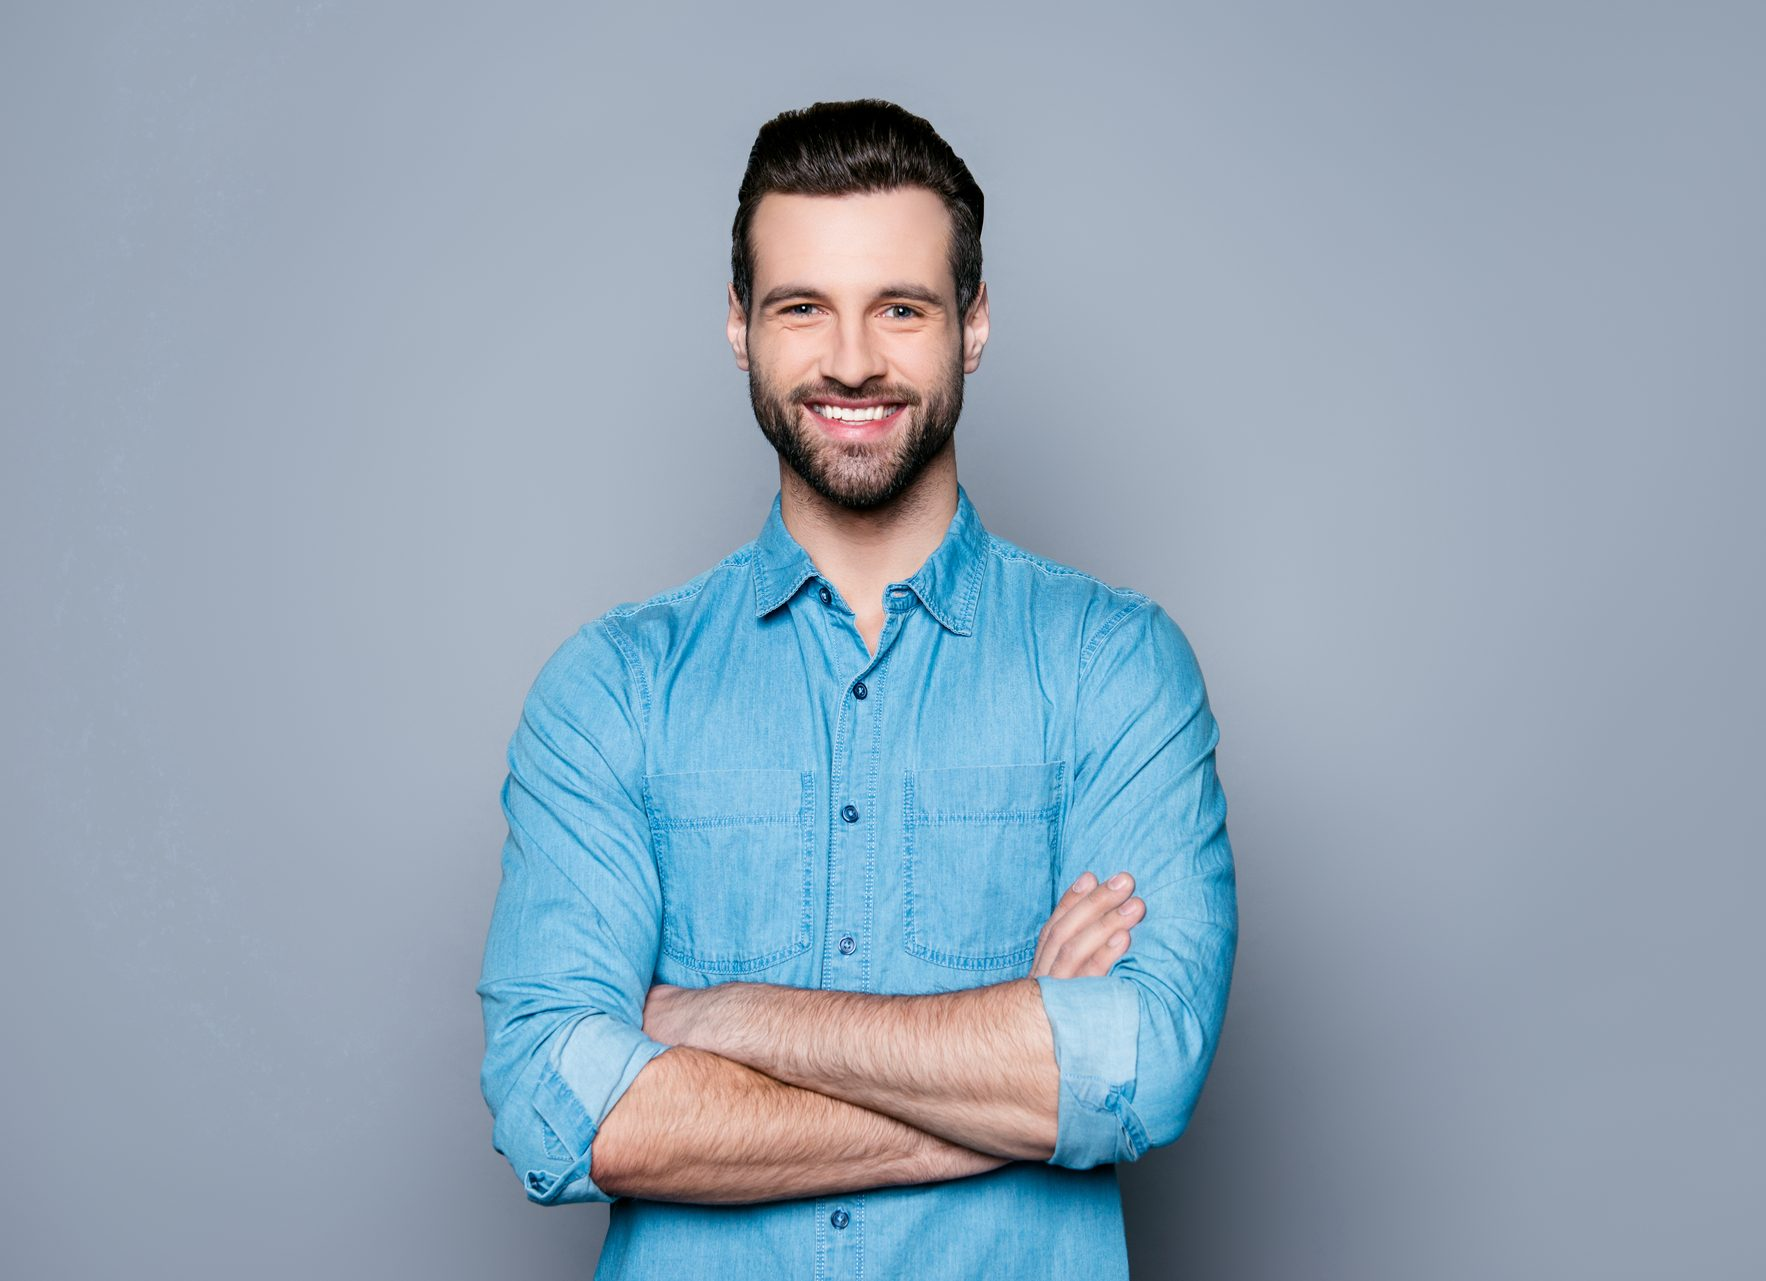 Cosmetic surgery for men growing in popularity